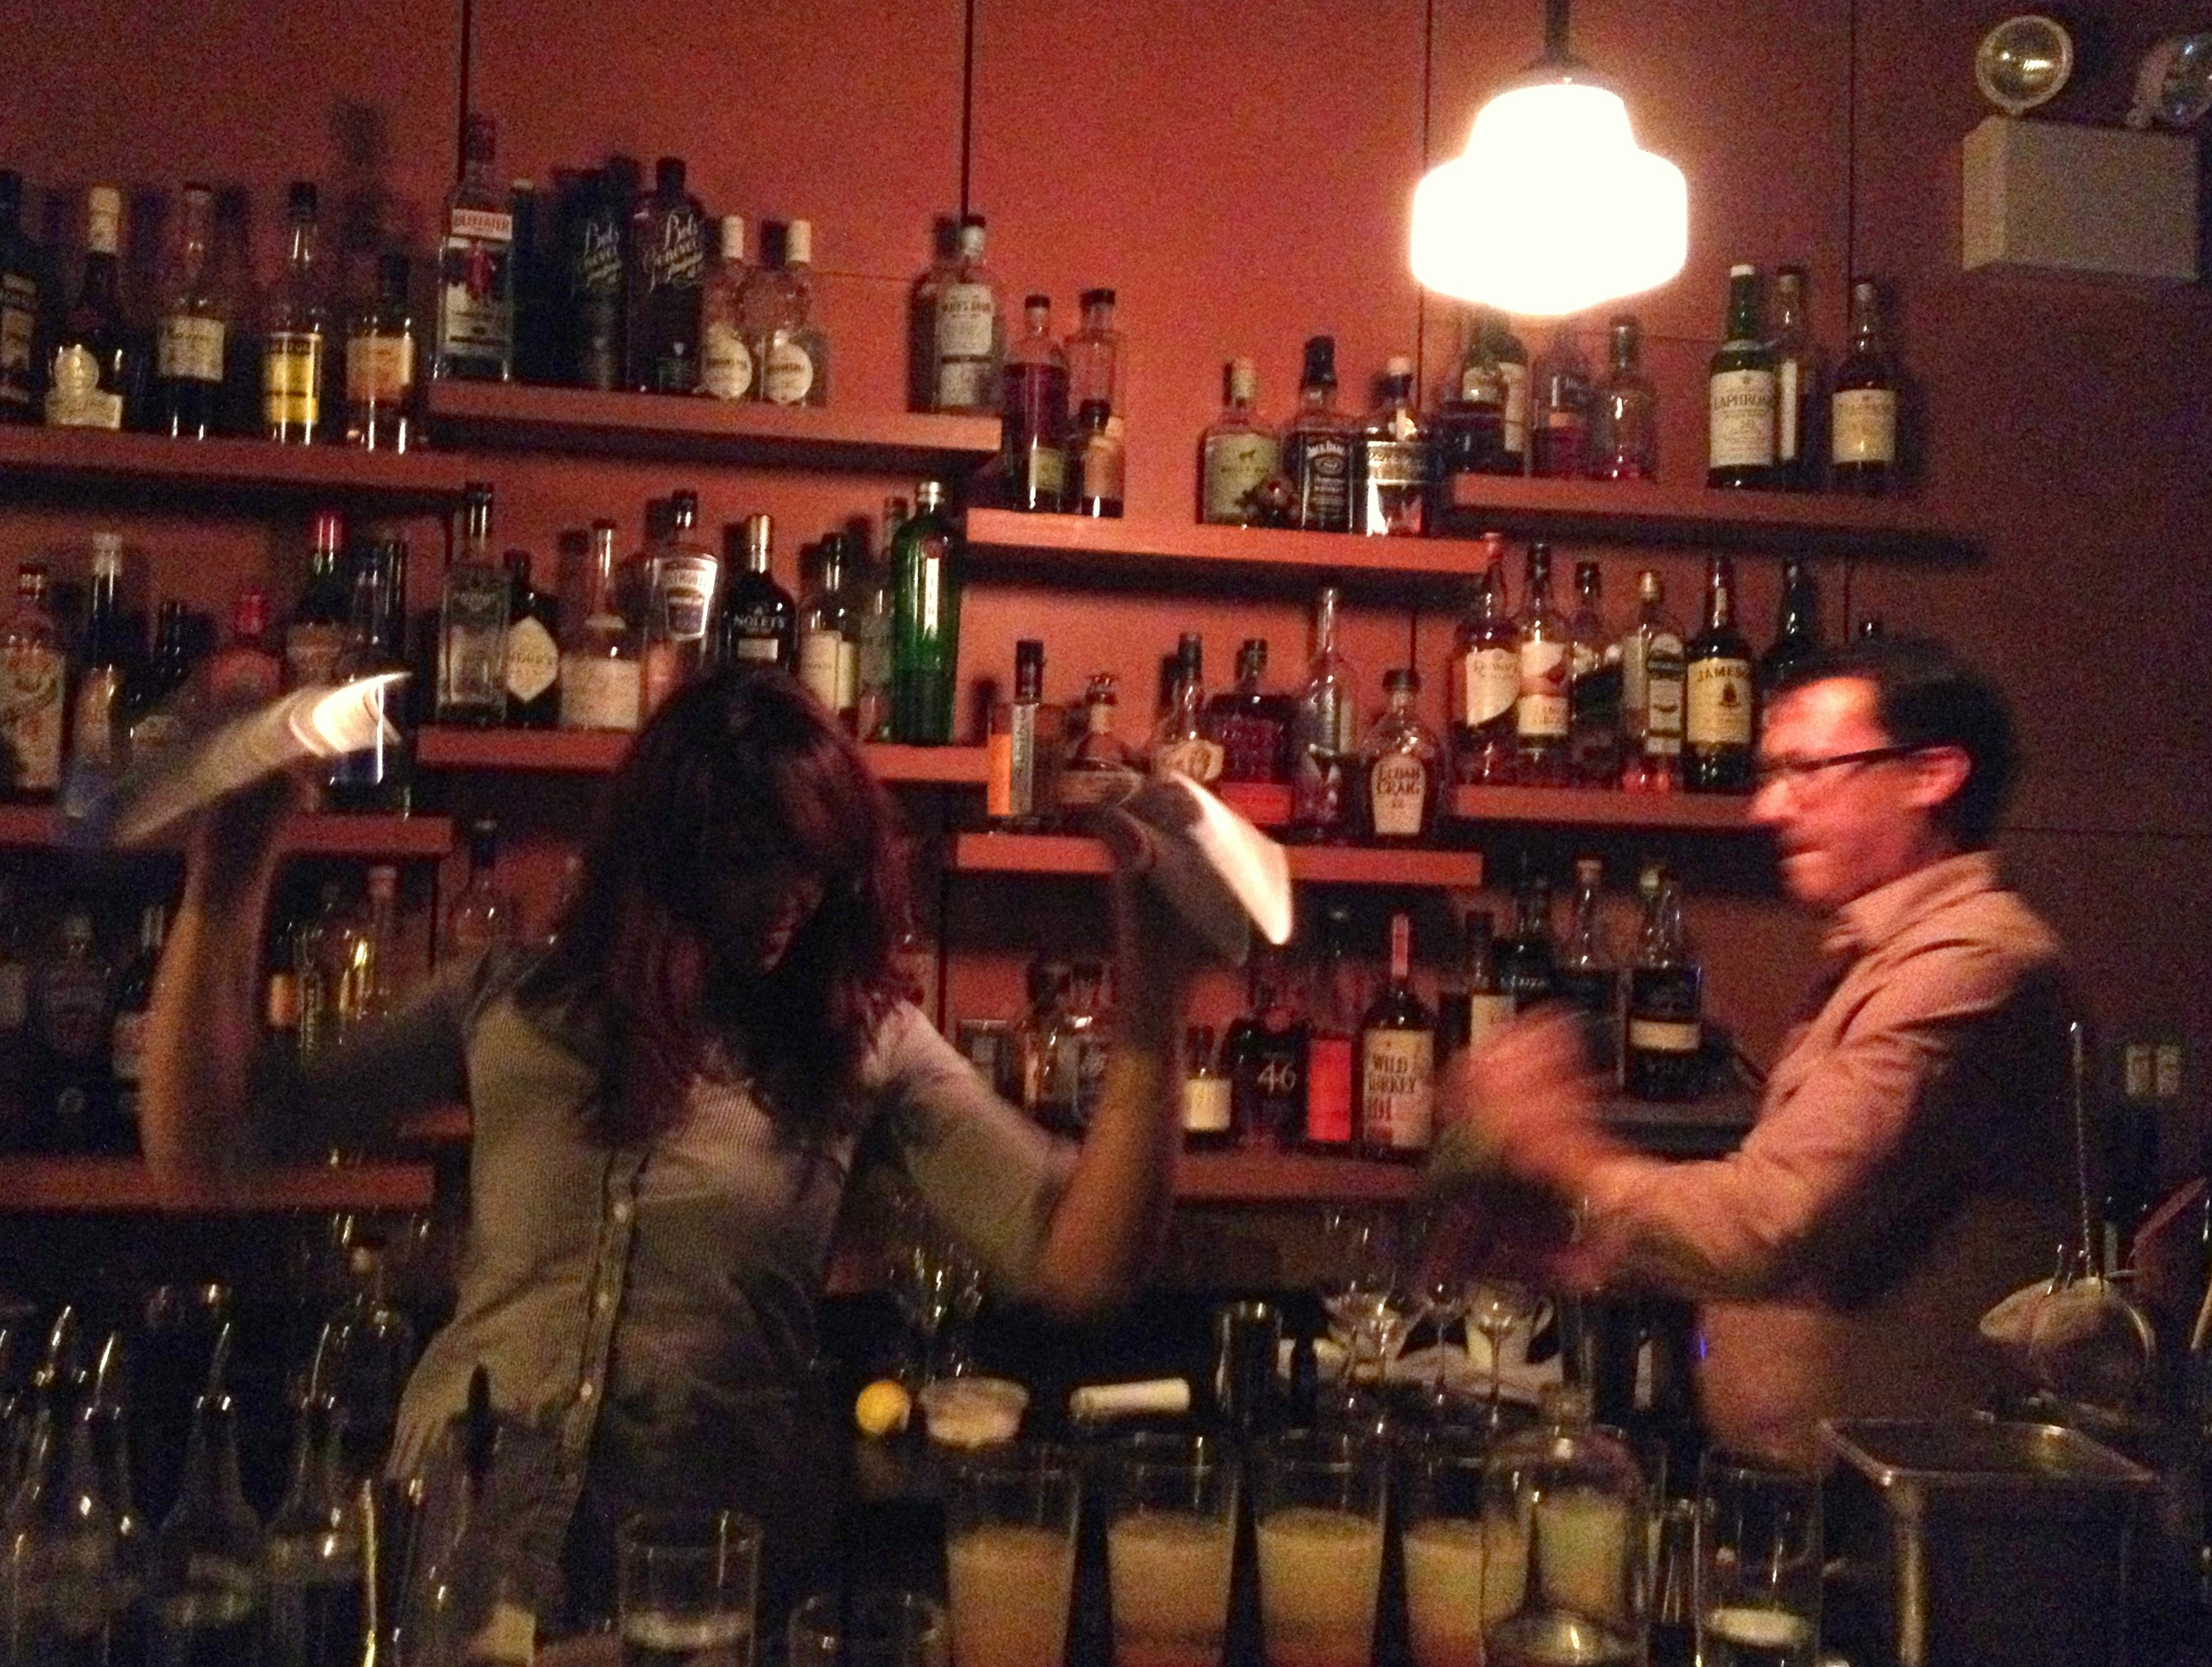 Bartenders shake the dessert cocktail, made of seaside rose hip syrup